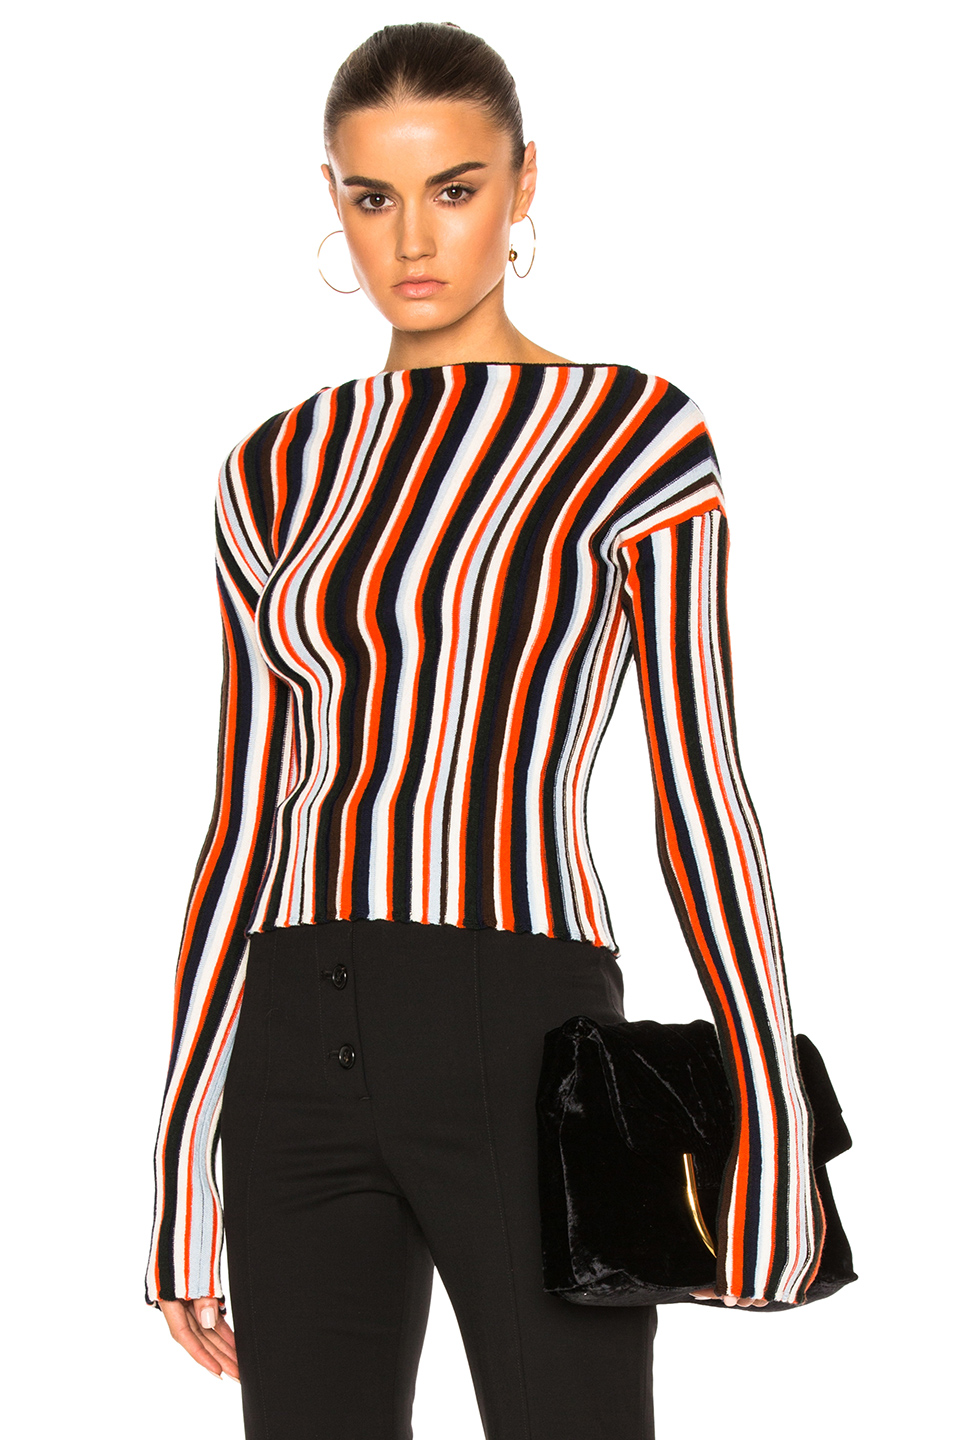 JACQUEMUS JACQUEMUS STRIPED SWEATER IN STRIPES,RED